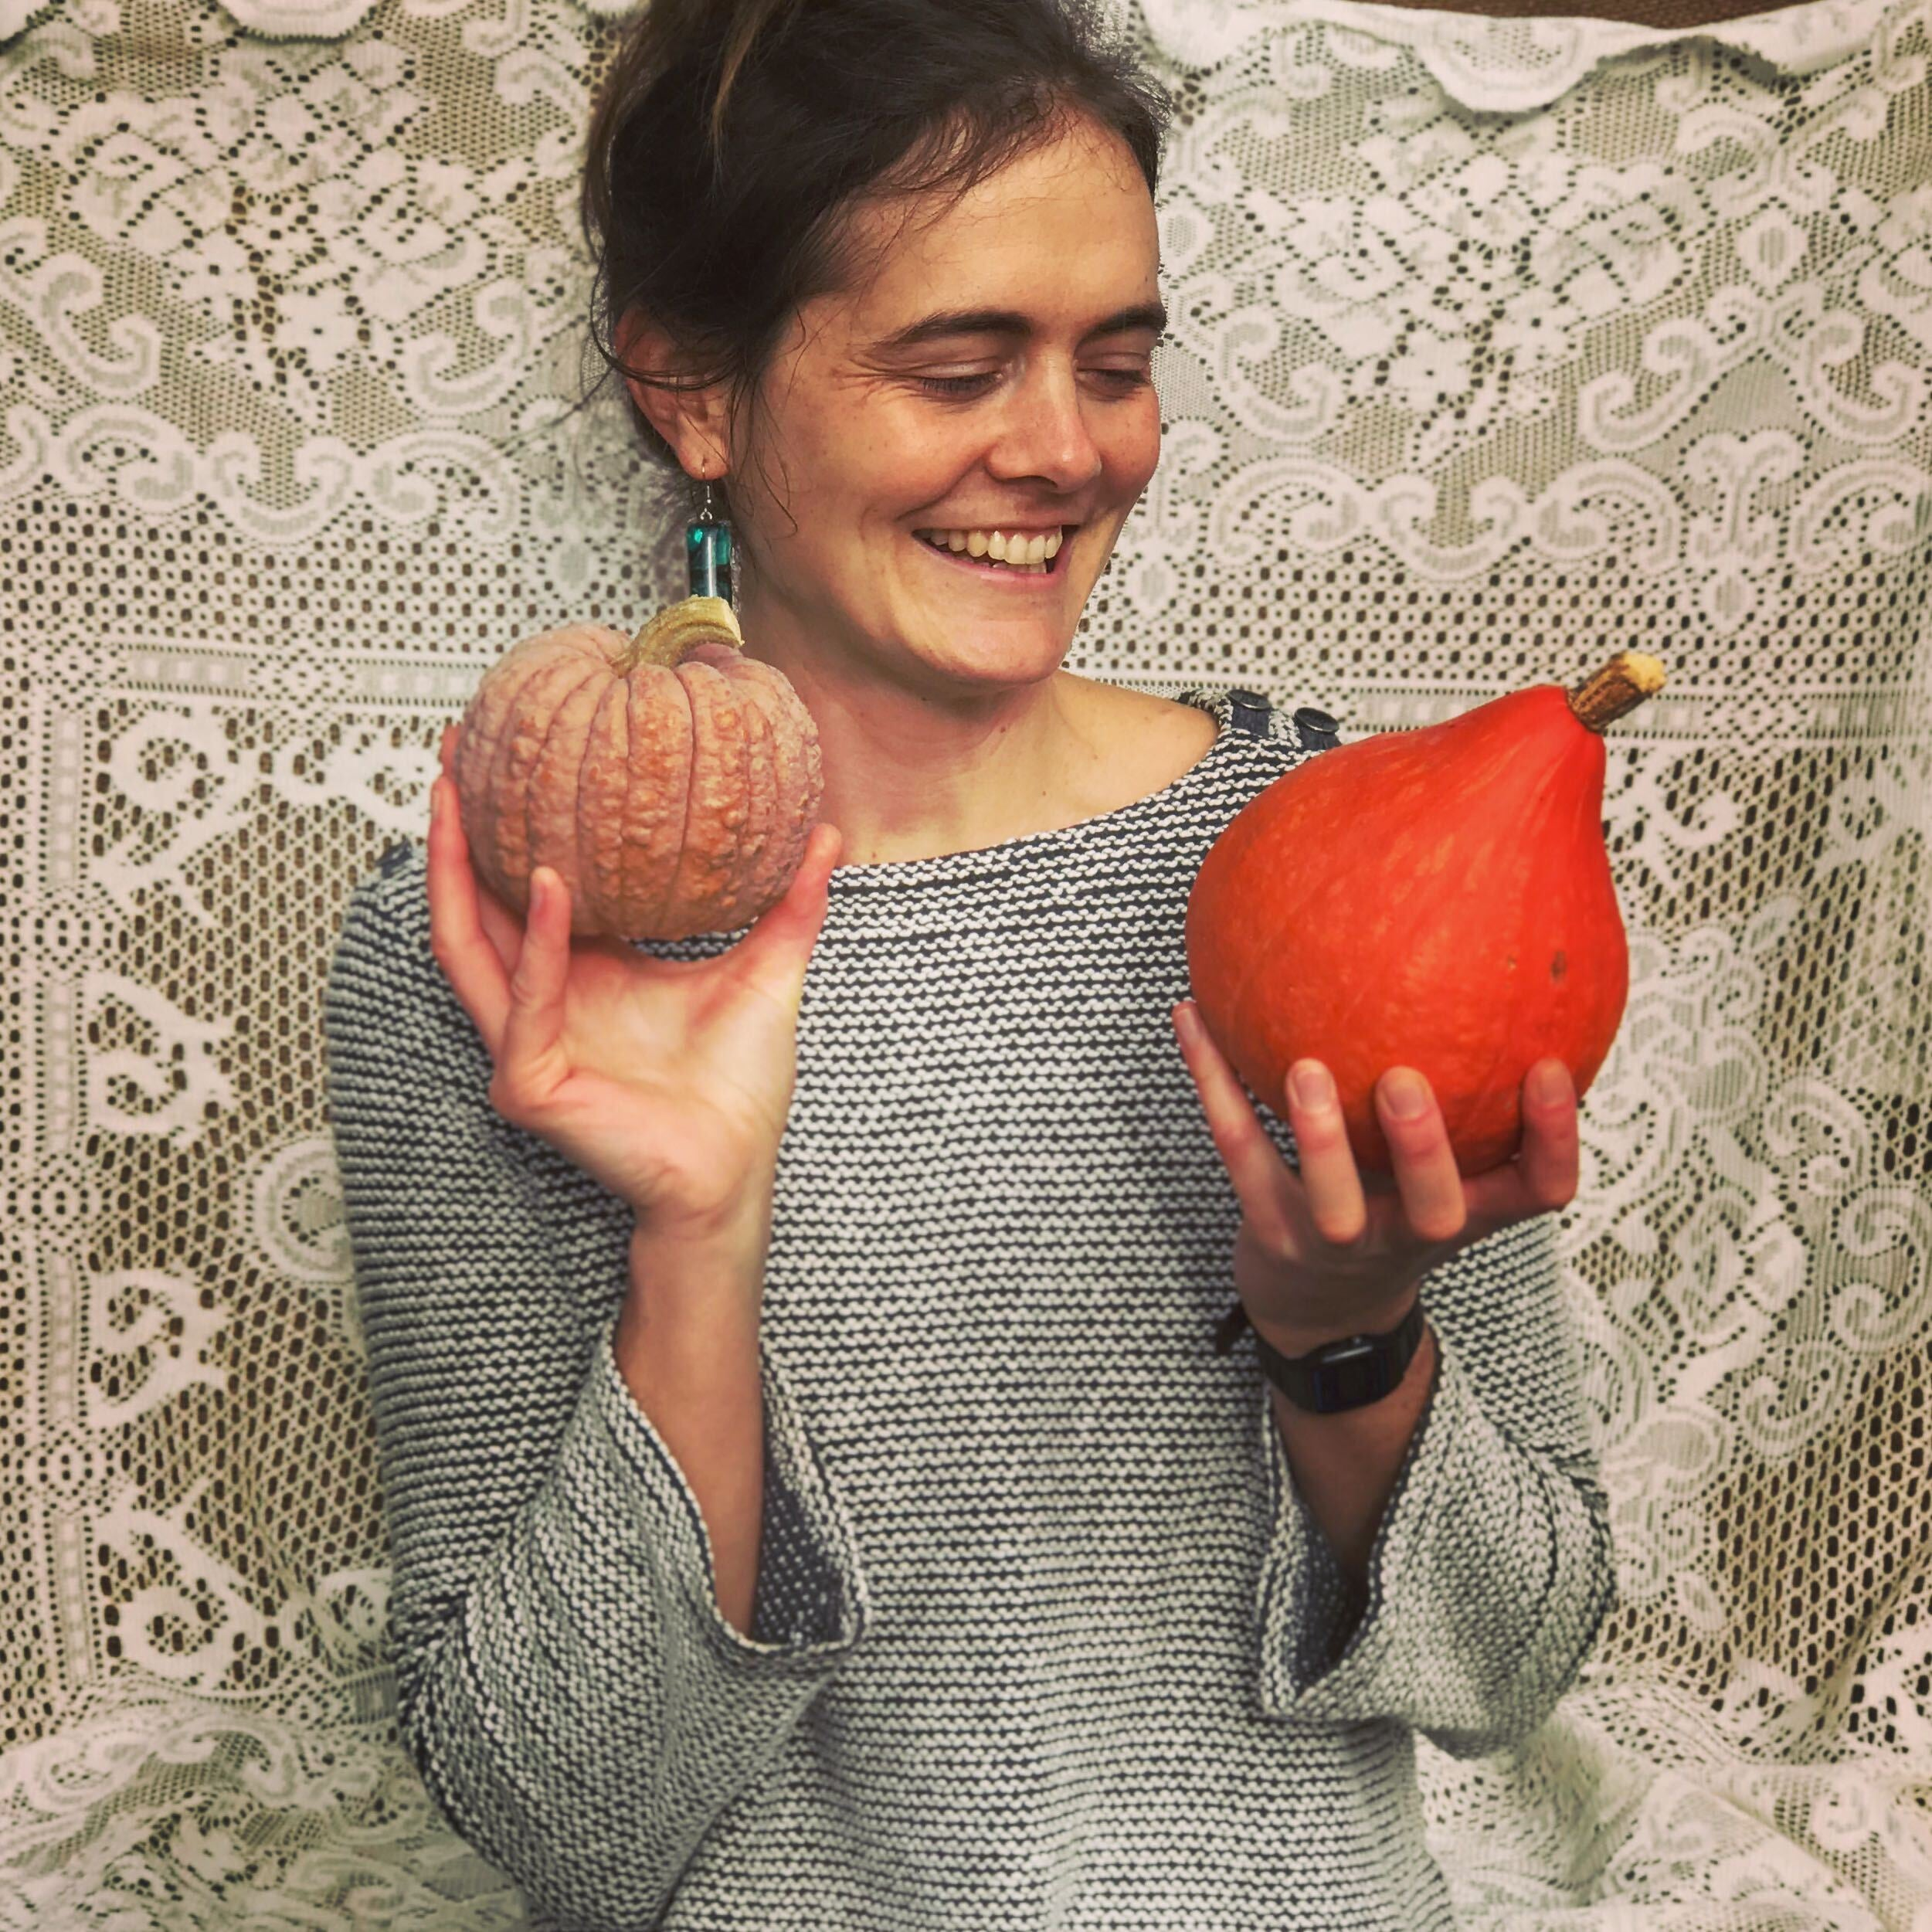 Michaela Hammer smiling and inspecting winter squash